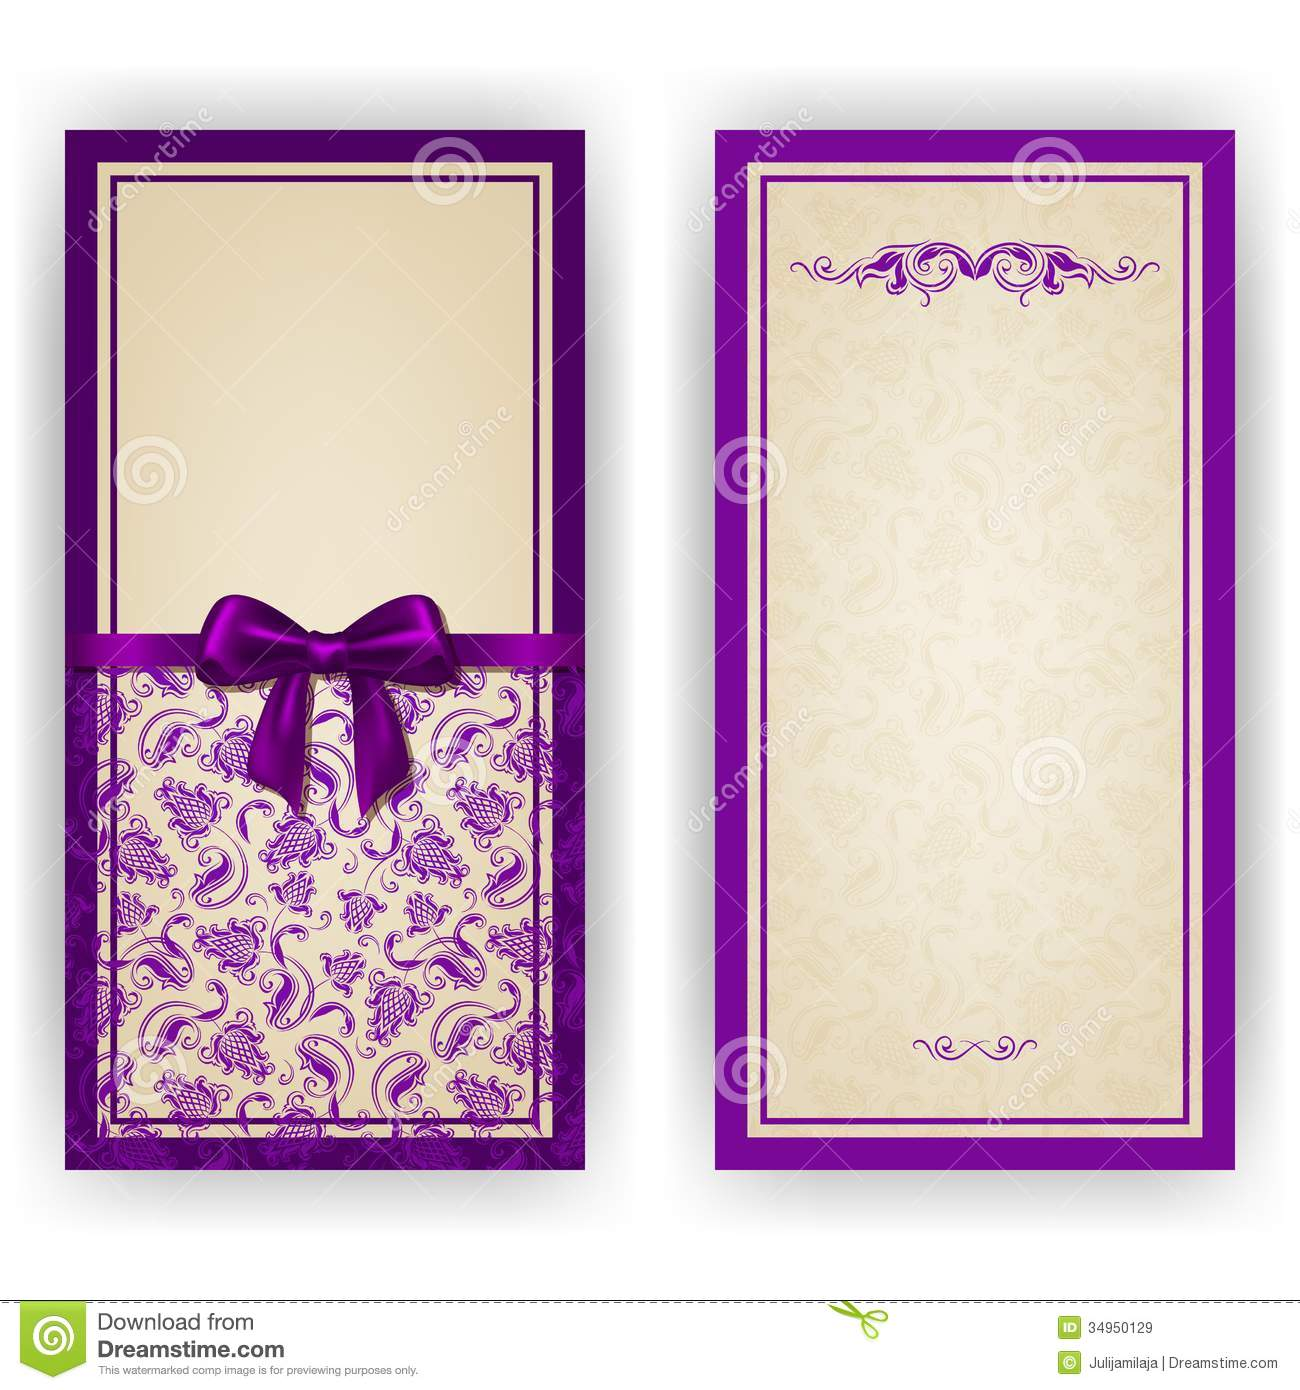 doc purple invitation cards vintage purple damask purple invitation card royalty photography image purple invitation cards